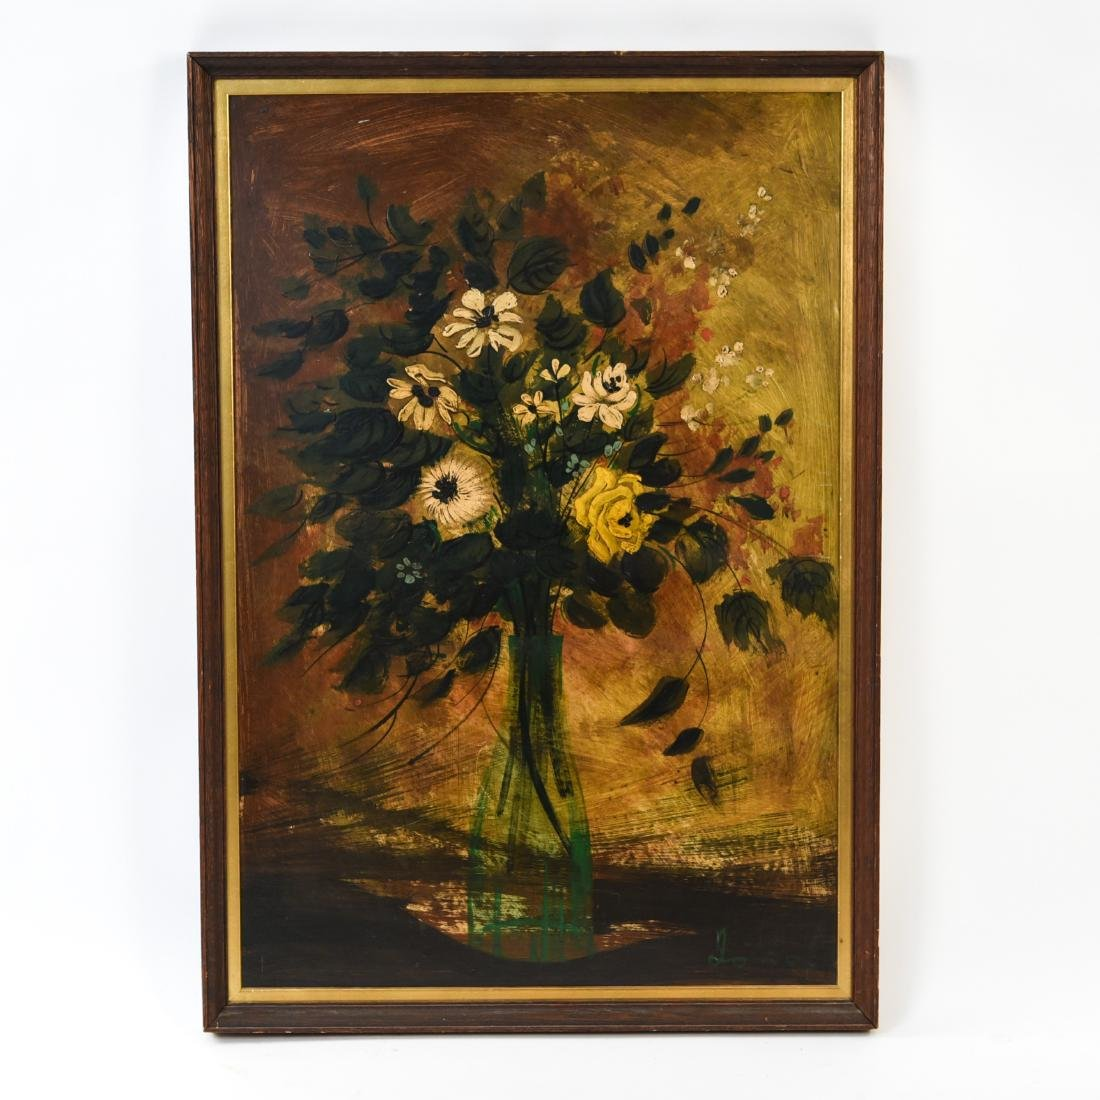 OIL ON BOARD STILL LIFE FLORAL PAINTING